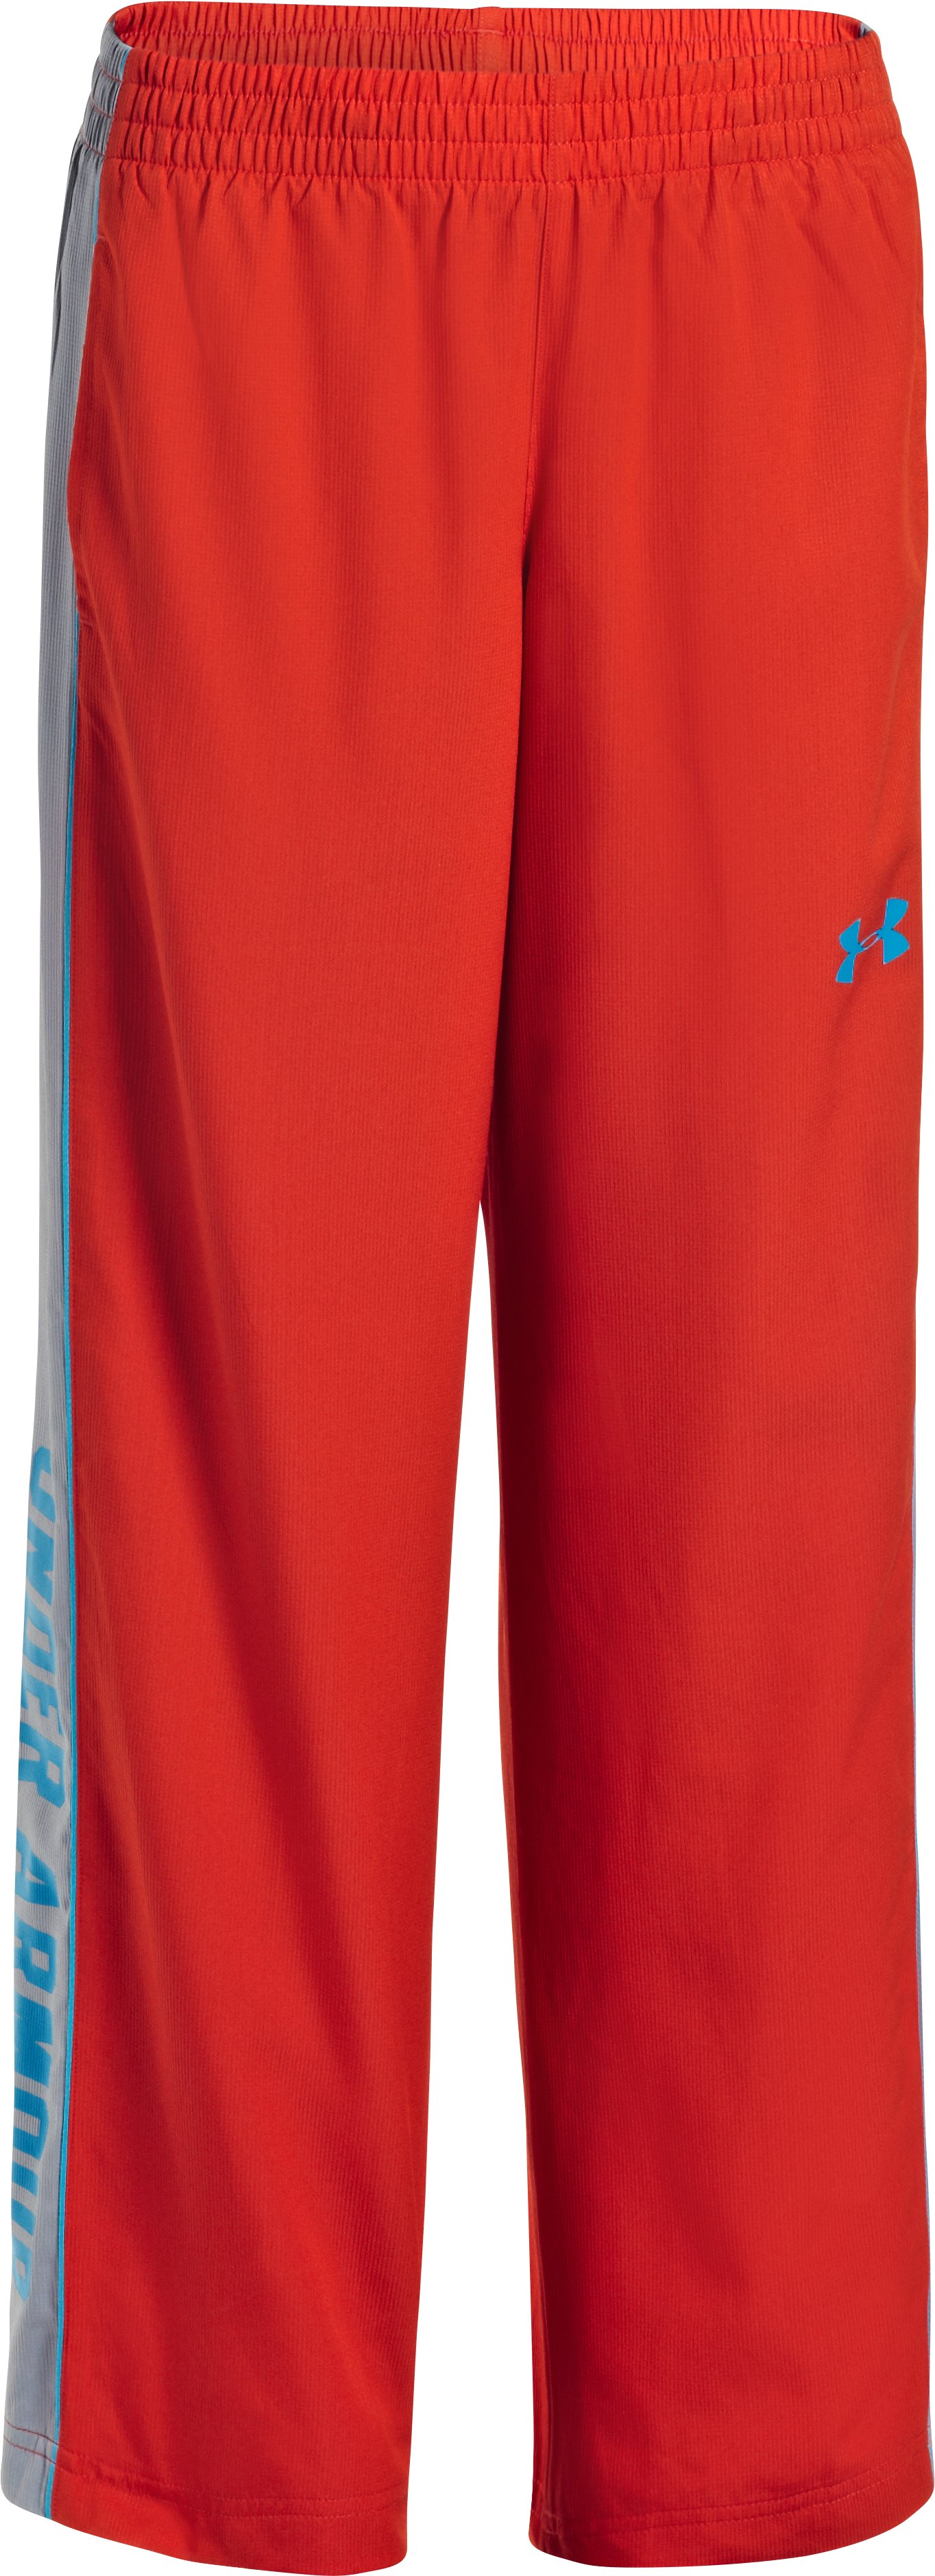 Boys' UA Brawler Woven Warm-Up Pants, Noise